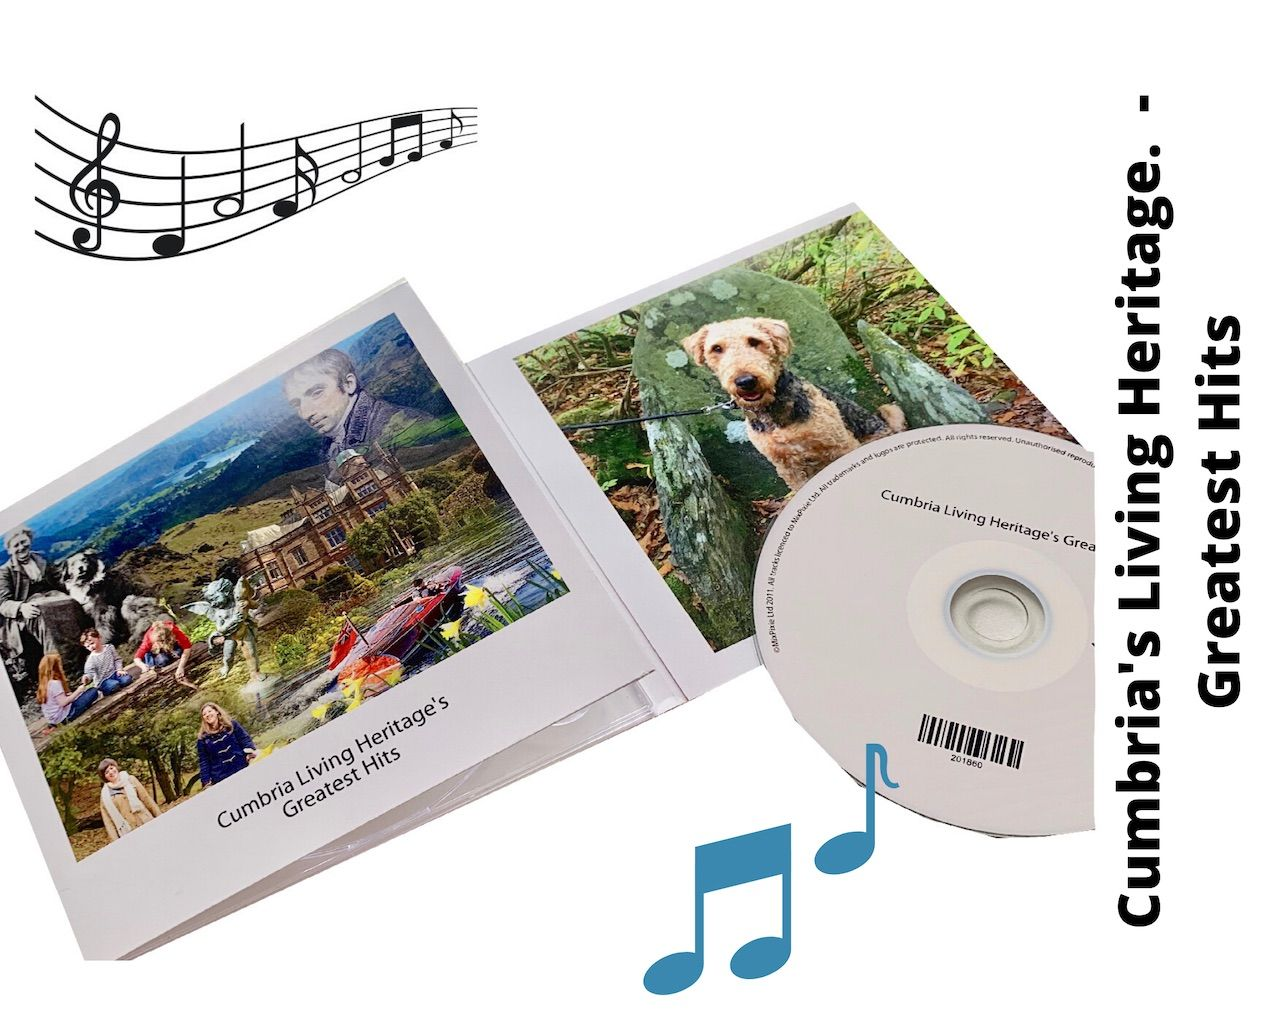 Listen to our new CD to plan your future visits